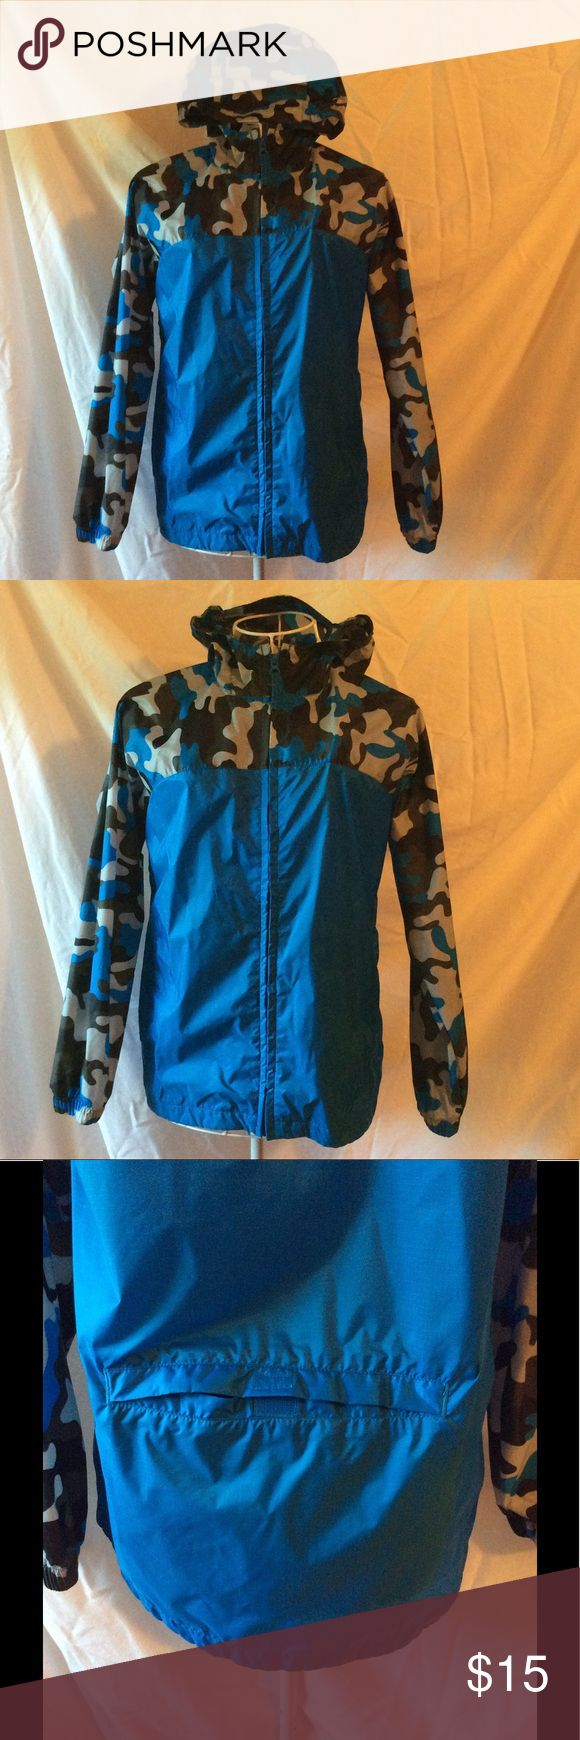 Land's End Kids rain jacket Land's End Kids rain jacket; 100% nylon; blue with camo sleeves and hood; folds into a pouch on the back; only worn once or twice; Size M 10/12 Land's End Kids Jackets & Coats Raincoats